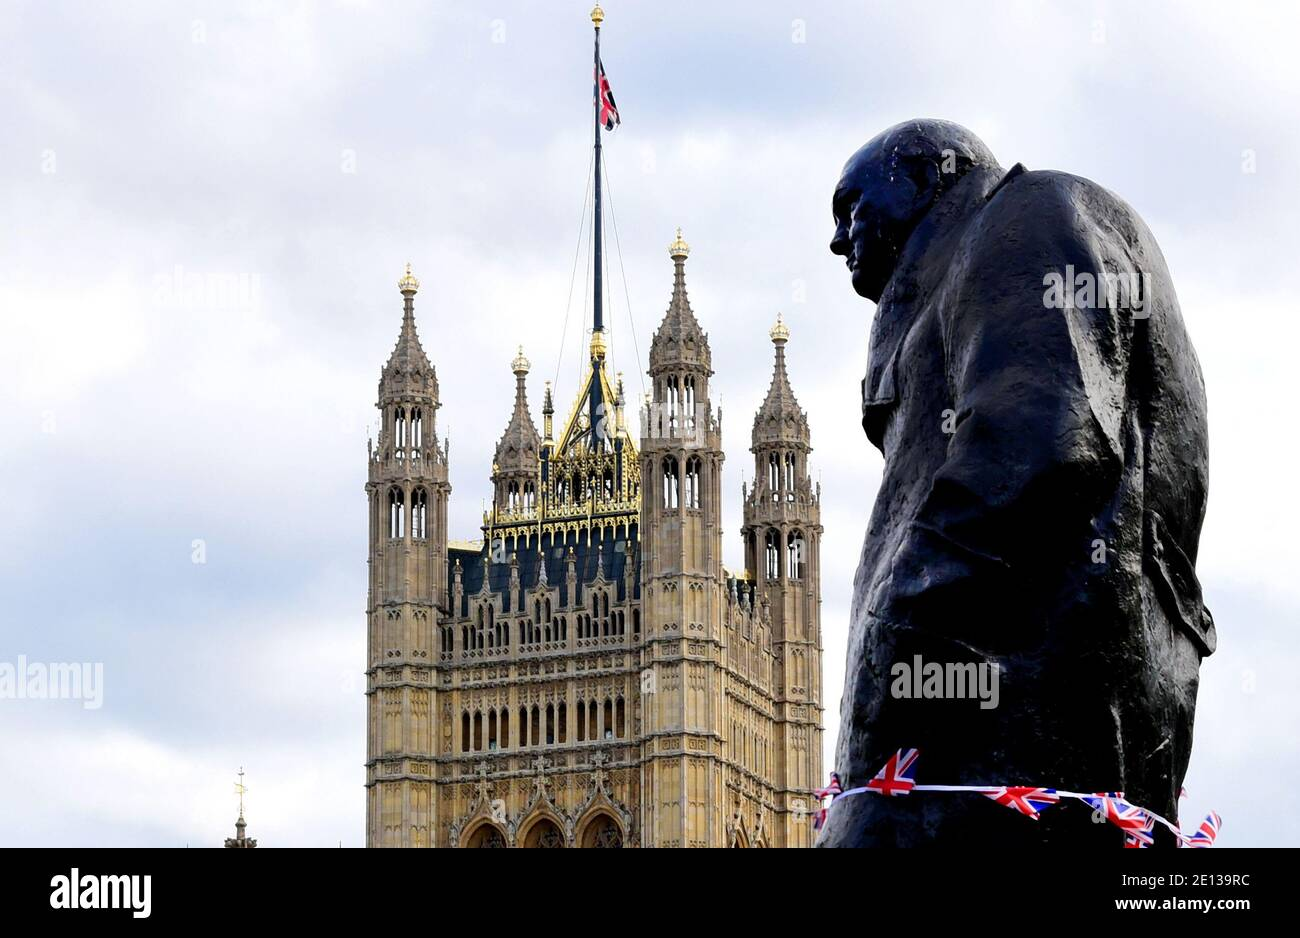 London, UK. 07th Sep, 2019. A monument of Winston Churchill, former Prime Minister of Great Britain, in front of the Victoria Tower of Westminster Palace. Credit: Waltraud Grubitzsch/dpa-Zentralbild/ZB/dpa/Alamy Live News Stock Photo